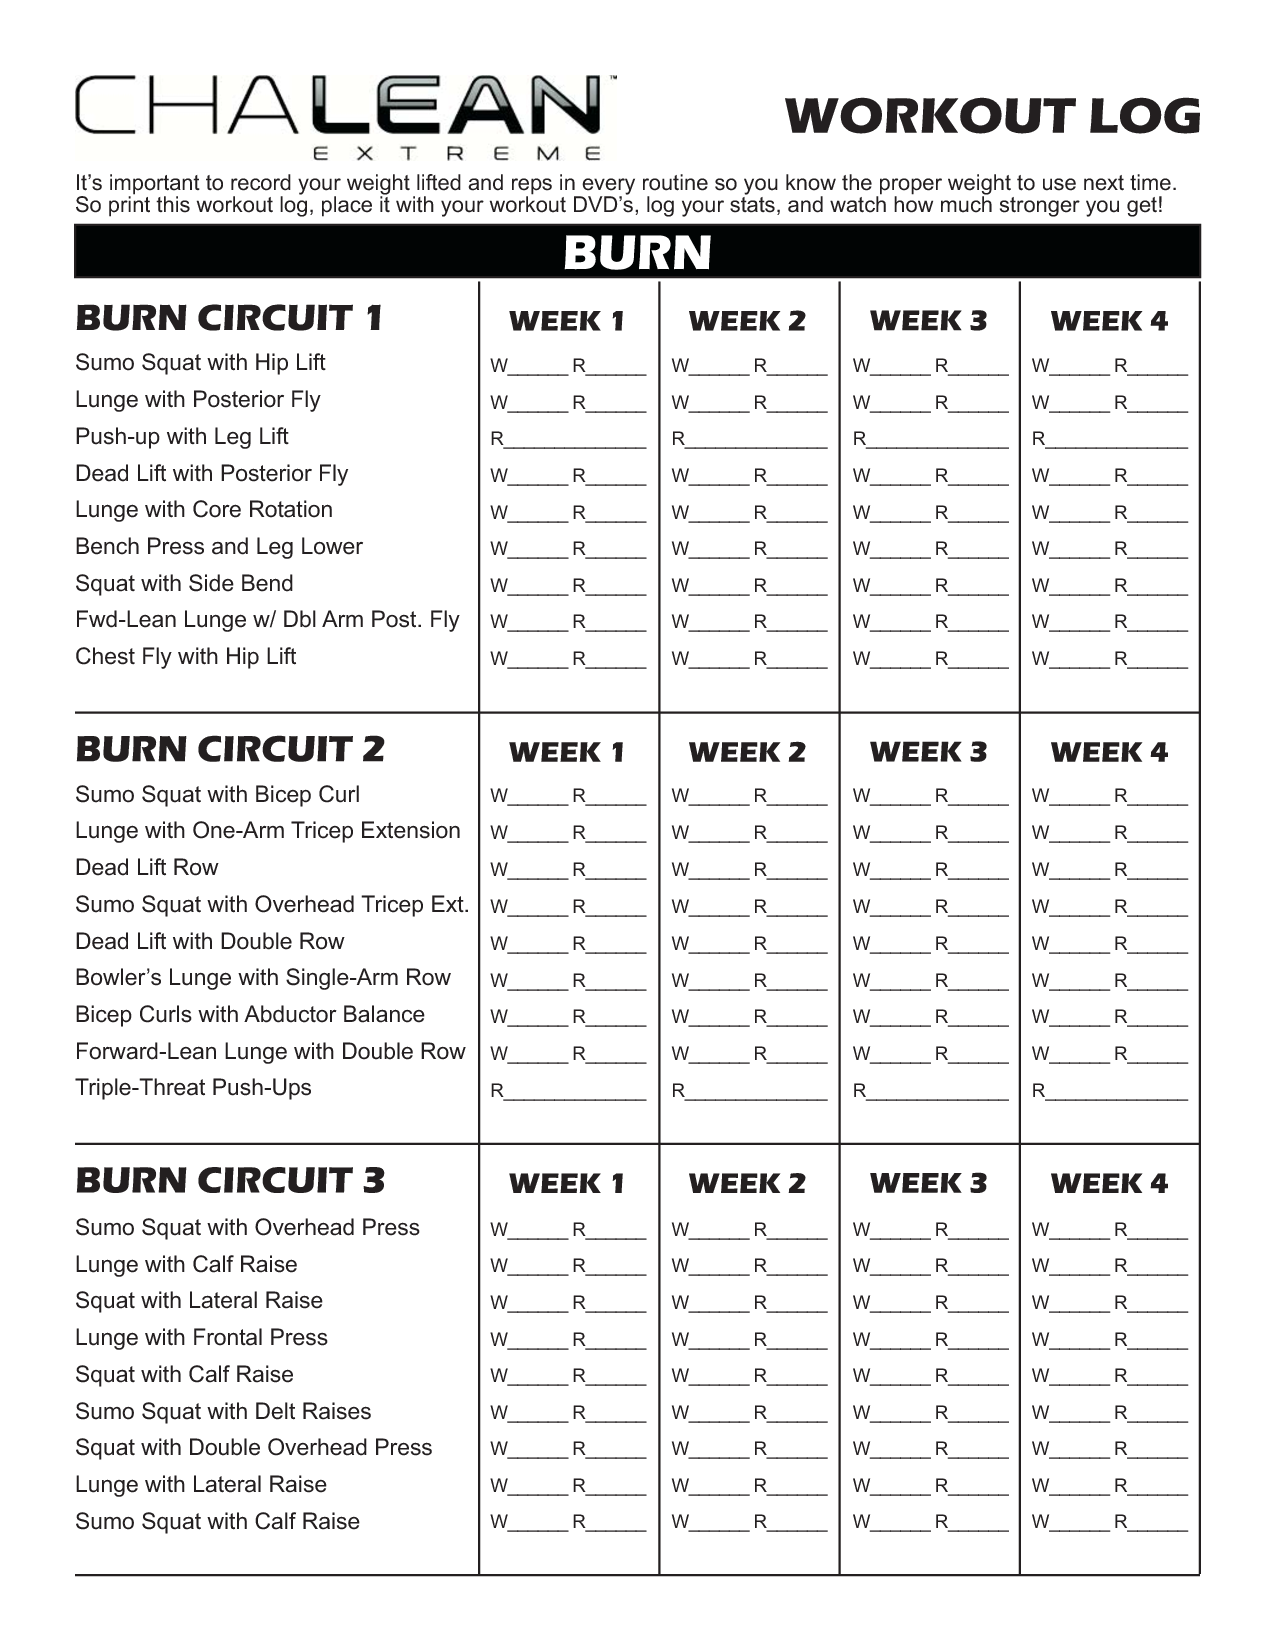 Worksheets Chalean Extreme Worksheets chalean extreme workout sheets log get sheets